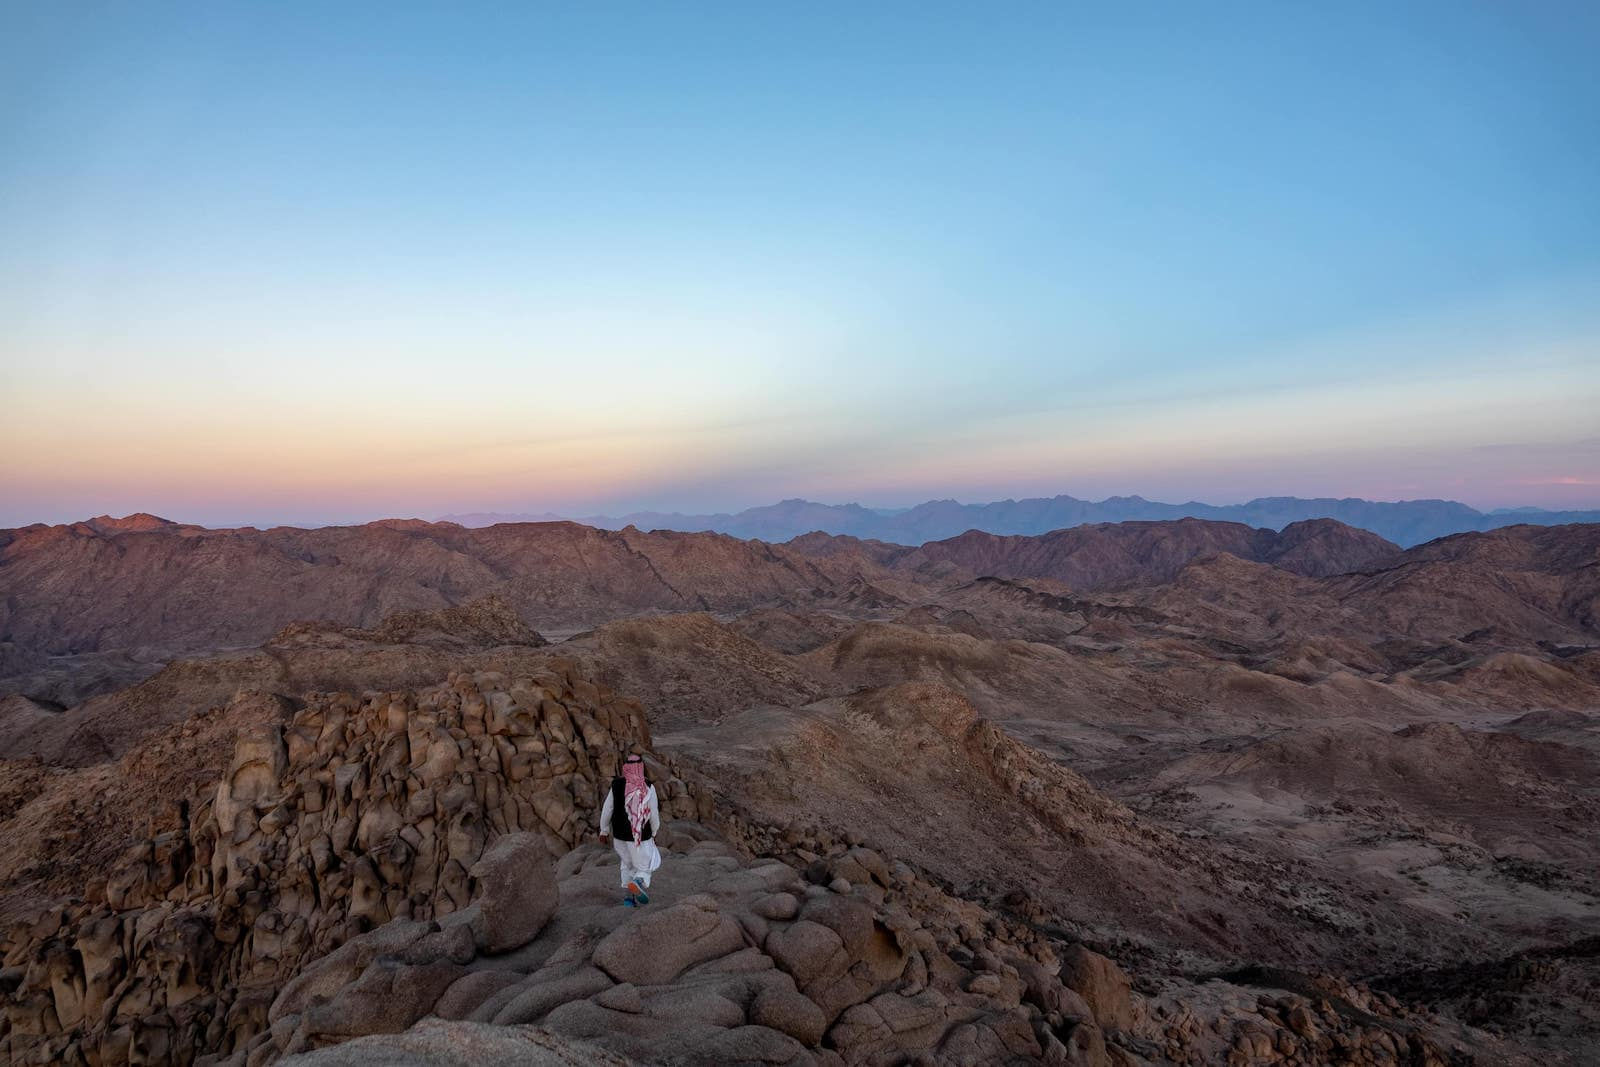 Our friend Hassan the Bedouin walking over his property in the Sinai peninsula